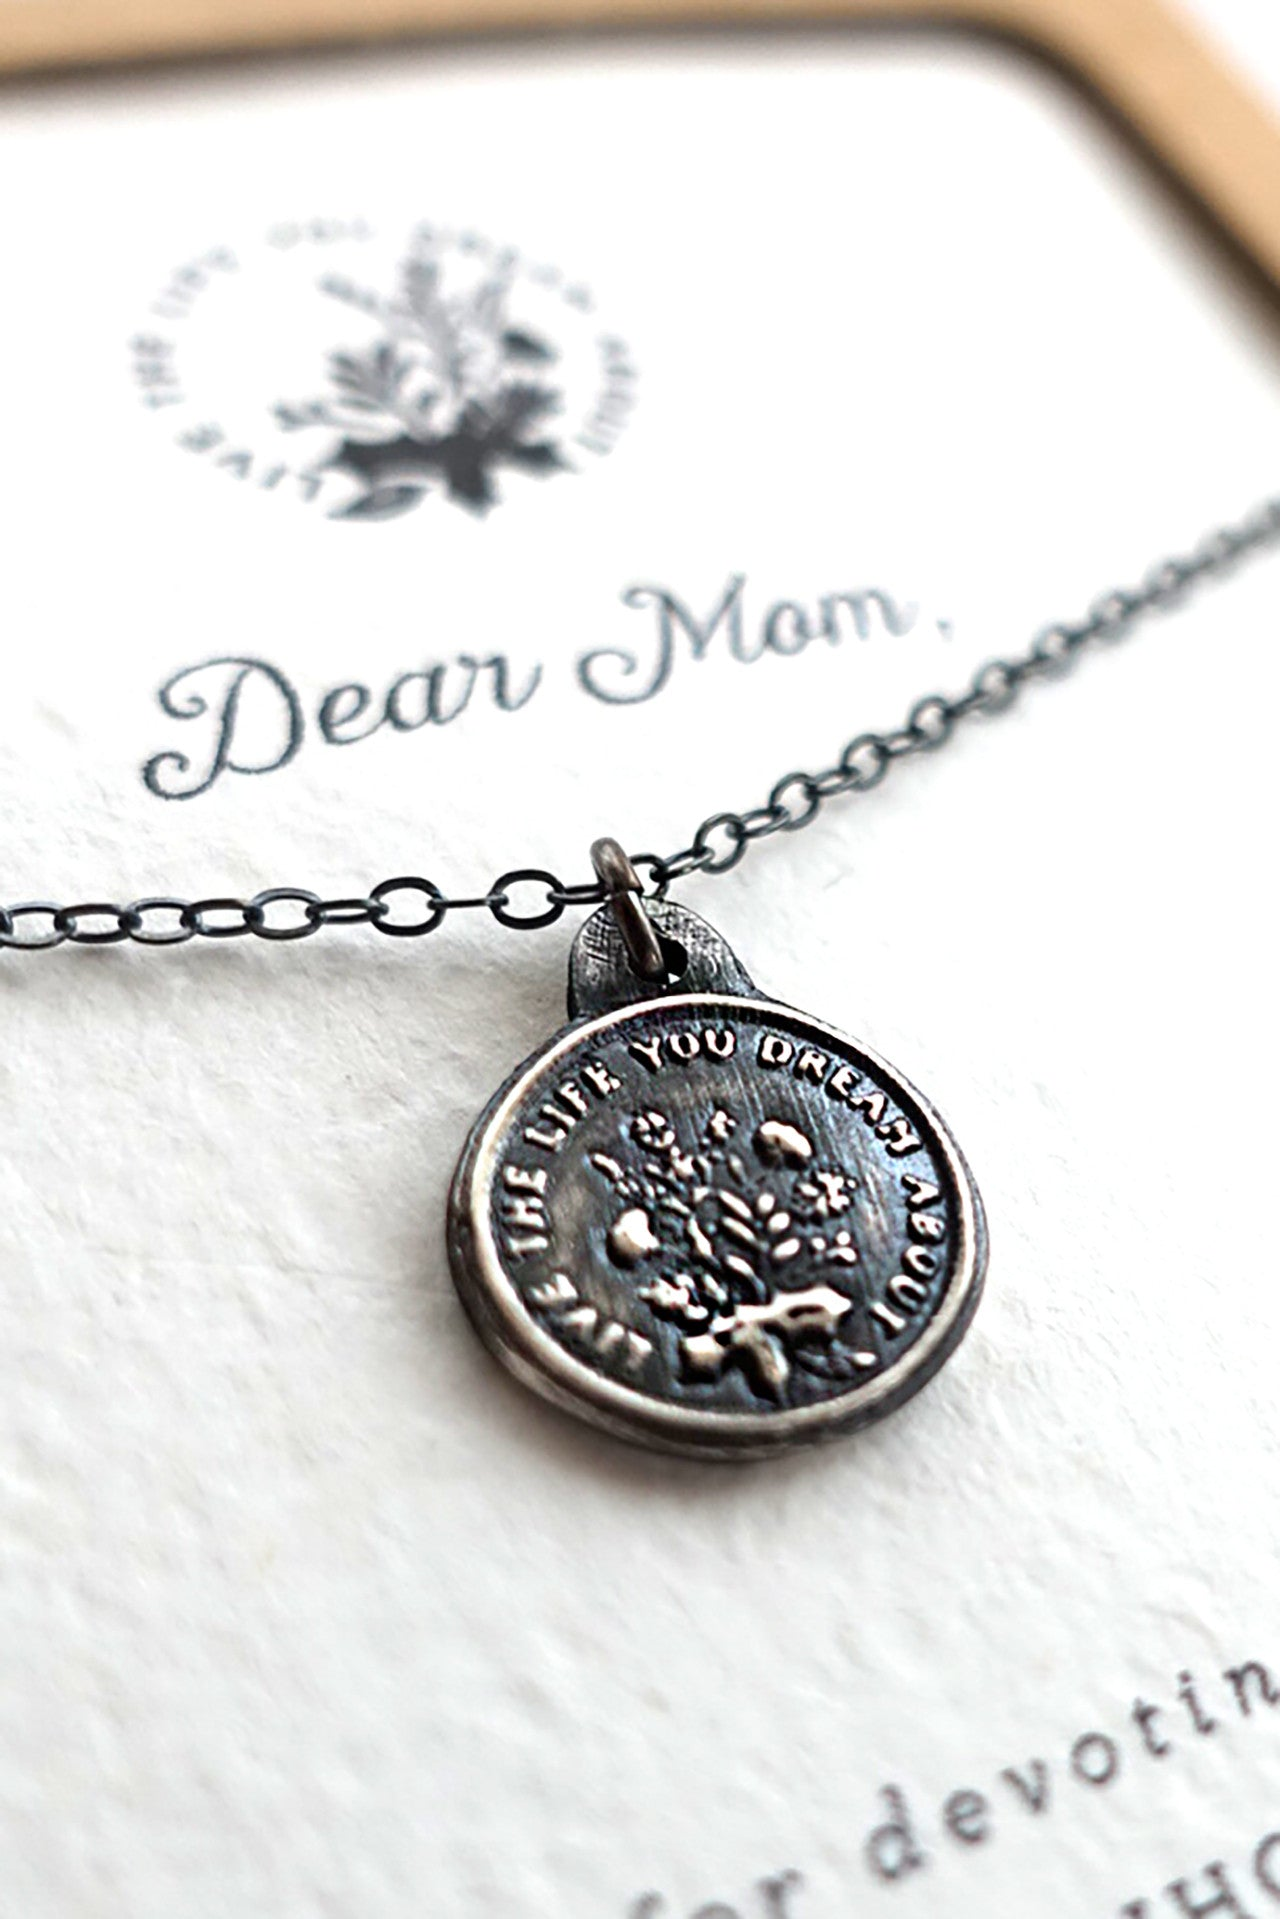 live for mom necklace you jewellery dear the ch life perfect products gift mothers jewelry ltlyd dream